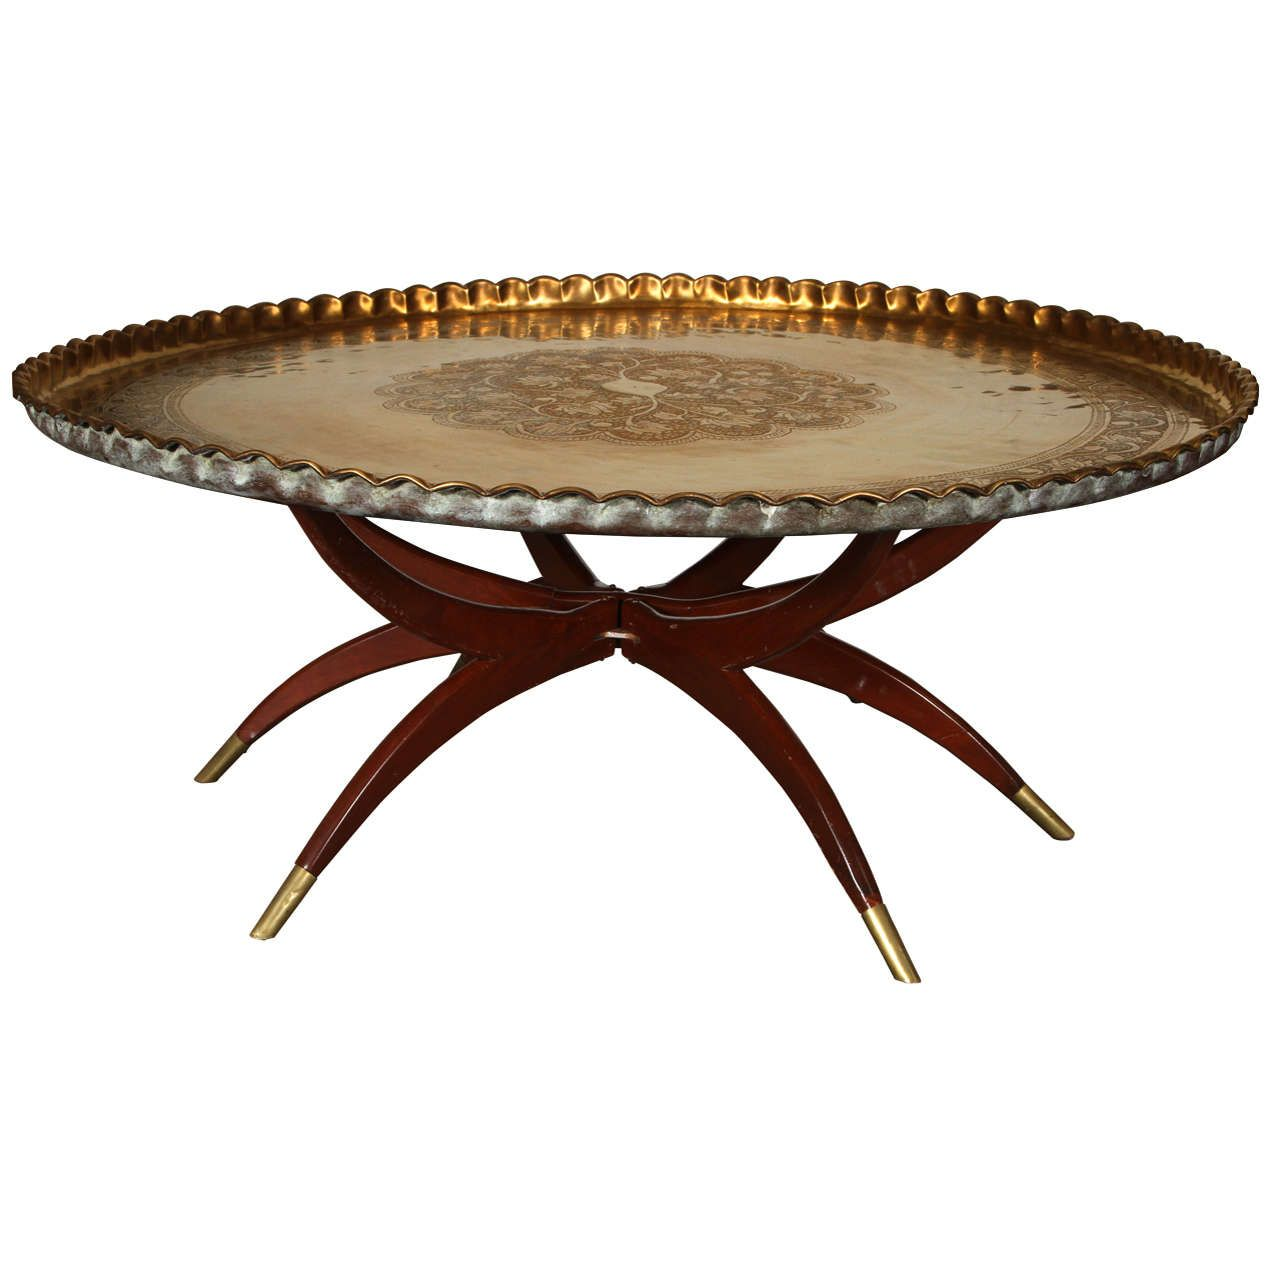 Moroccan decoration, brass round table